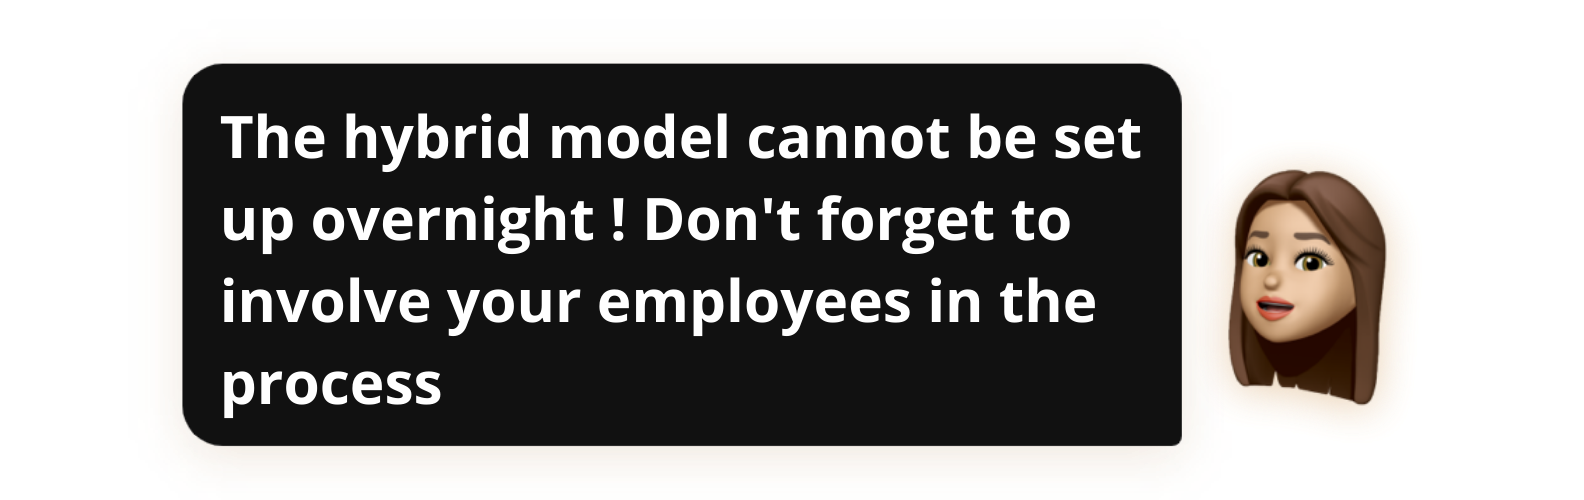 The hybrid model cannot be set up overnight ! Don't forget to involve your employees in the process - Popwork